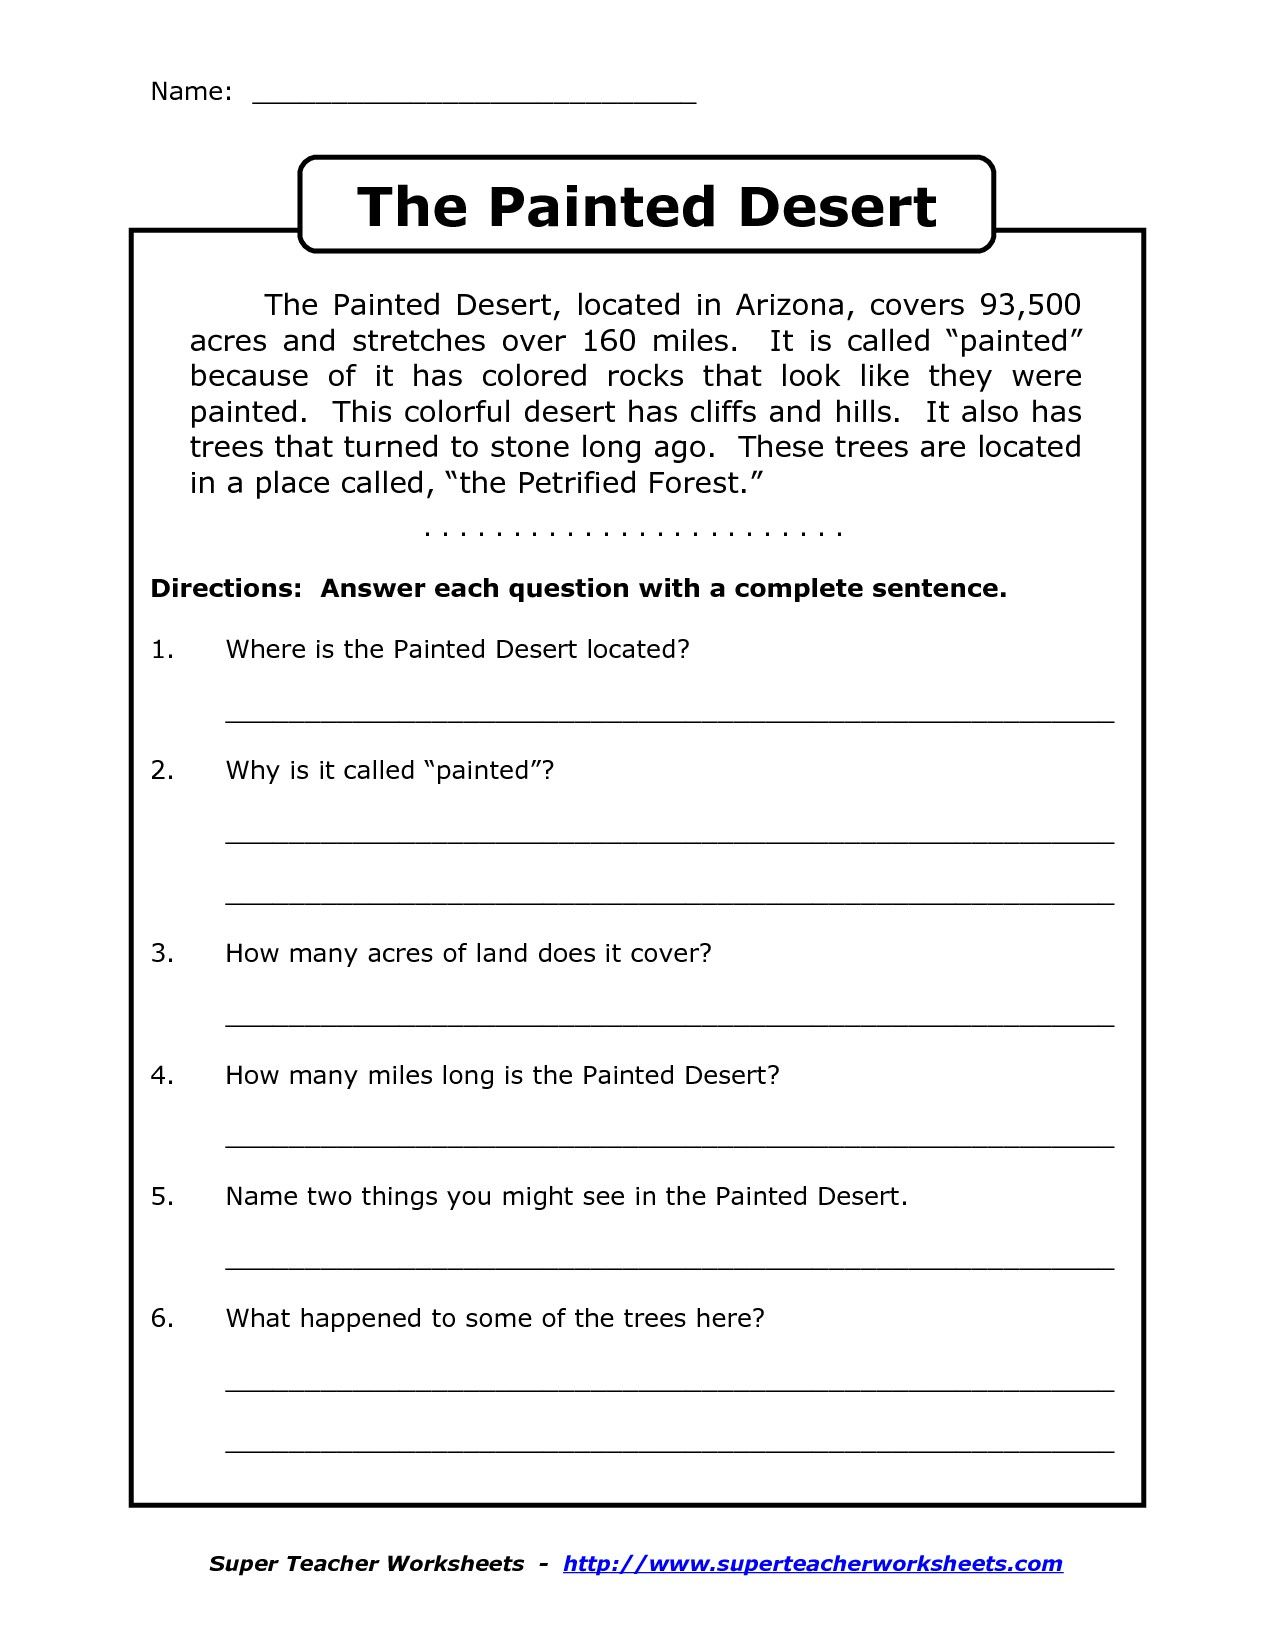 Worksheet Reading Passages Grade 4 worksheet 5th grade reading passages and questions noconformity sage common core authors purpose 3 4 5 6 7 8